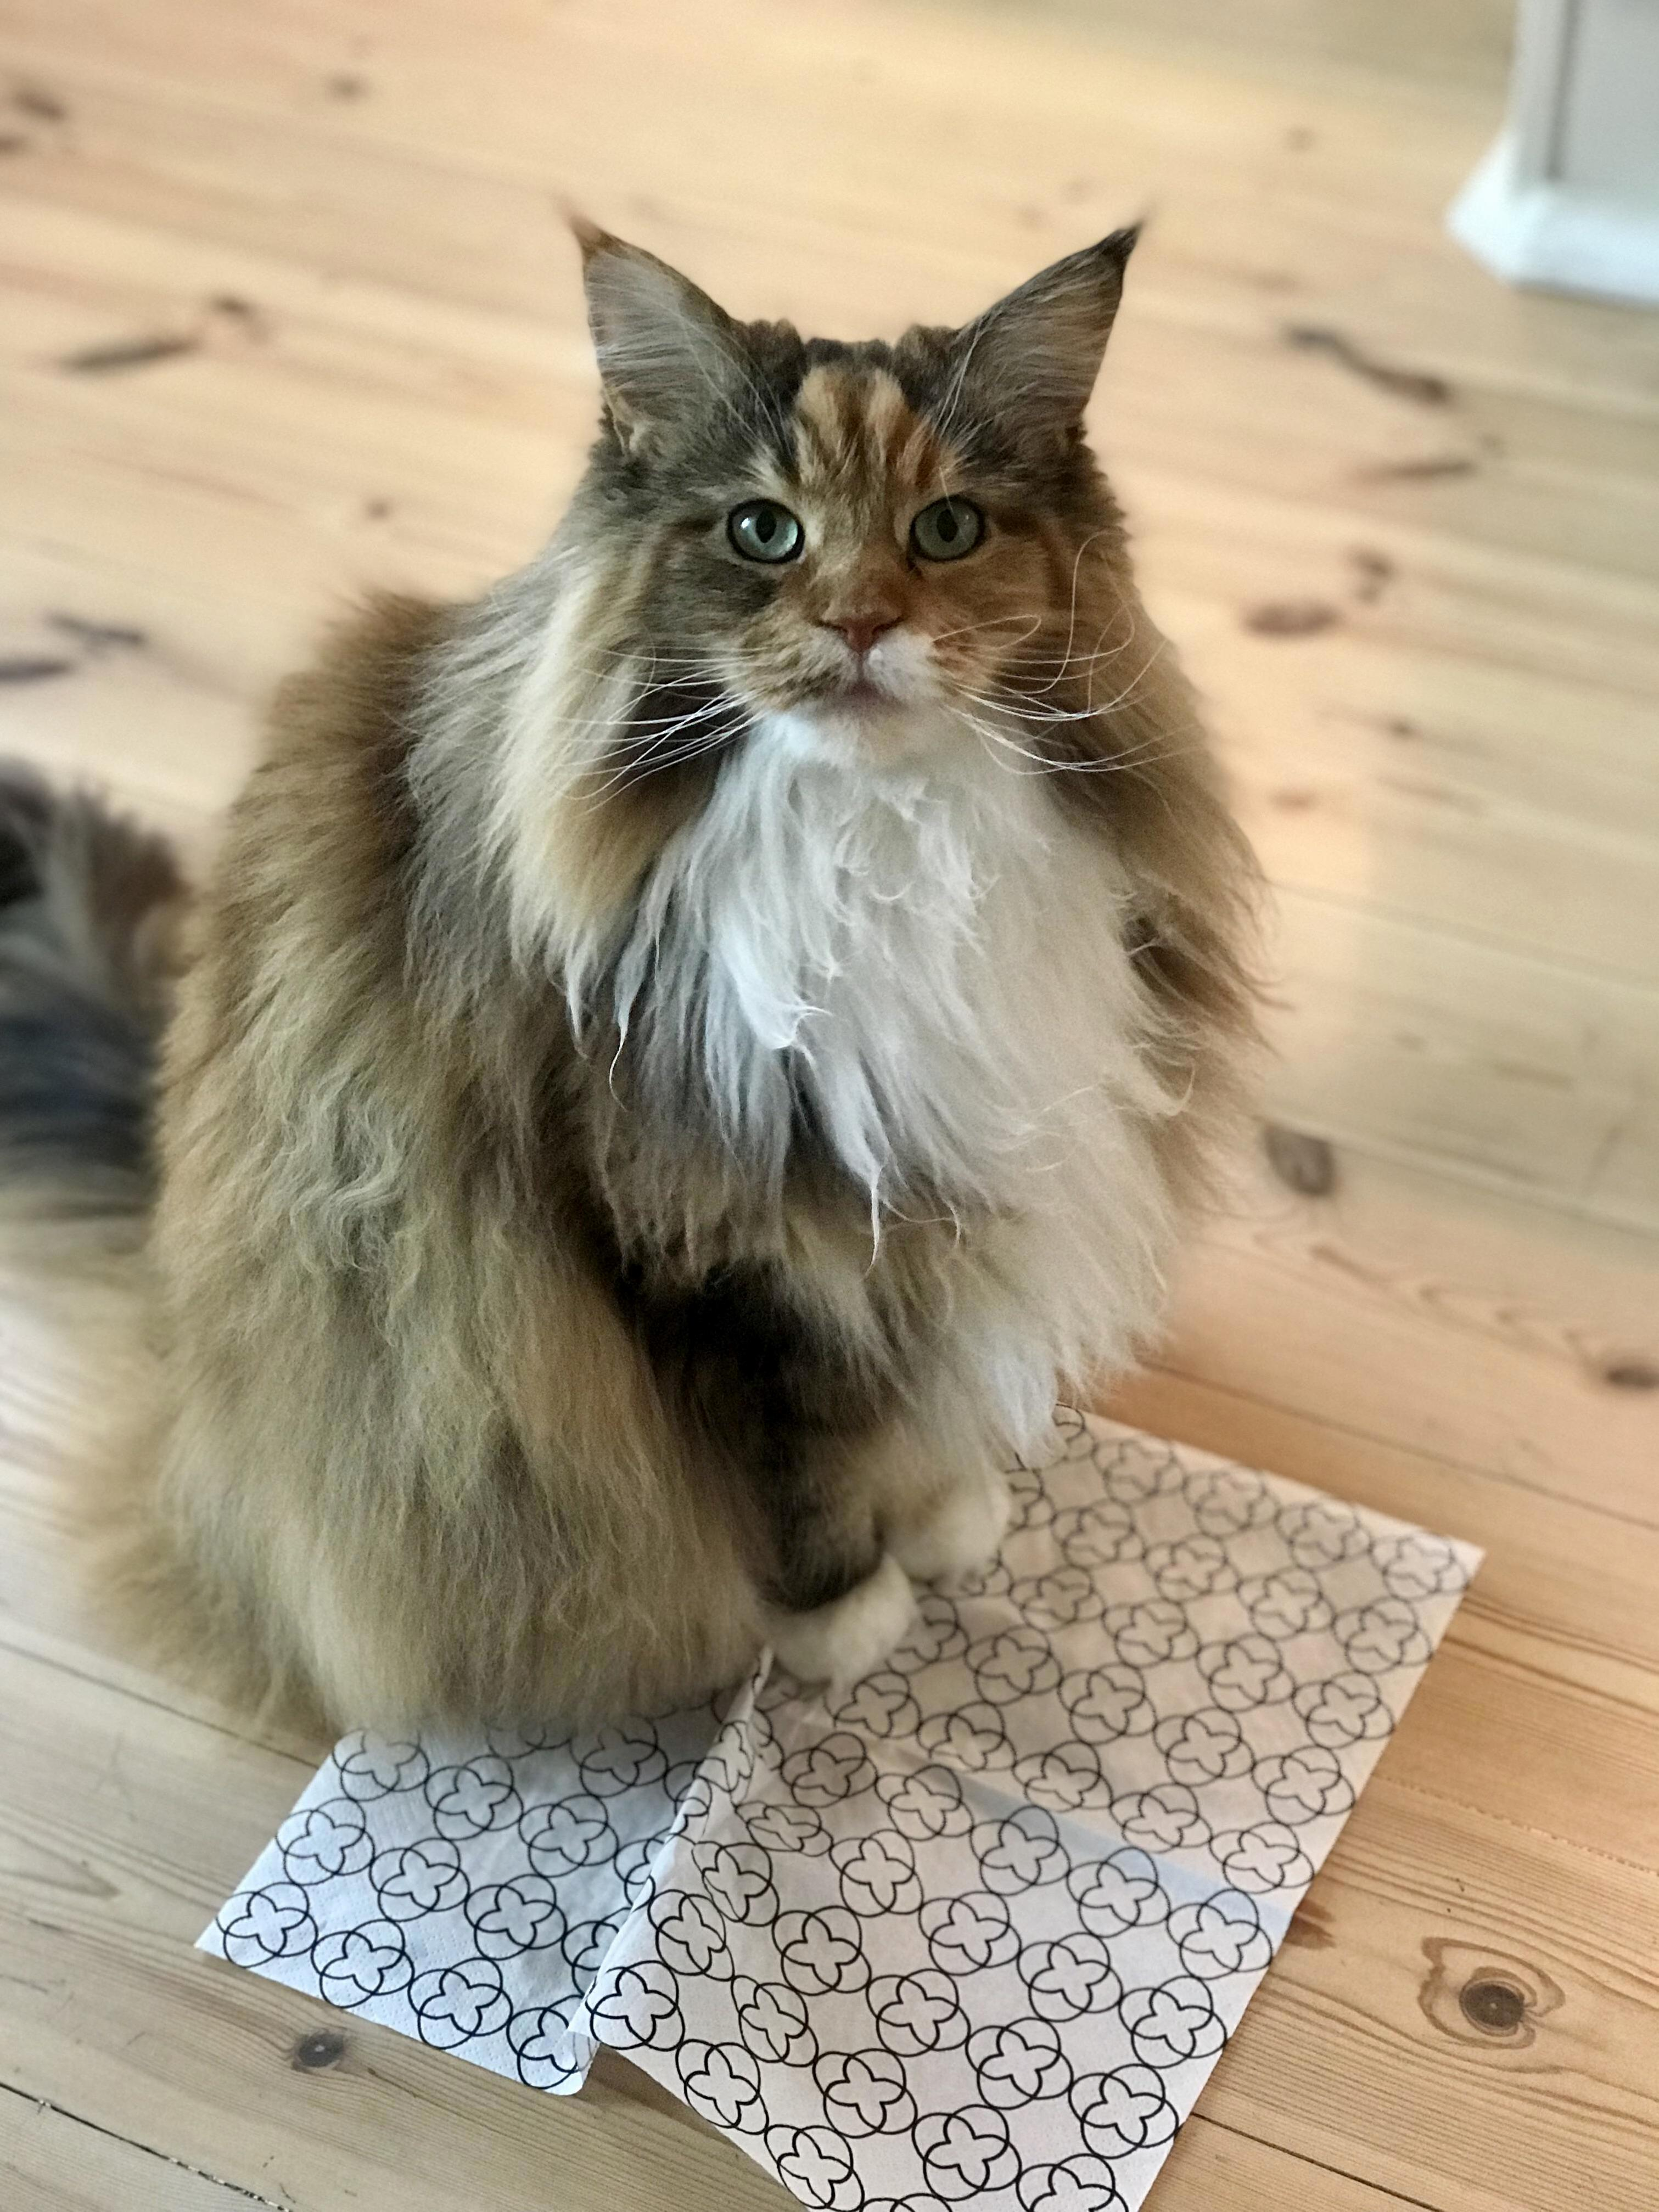 Pixel thinks that napkins are also good for sits